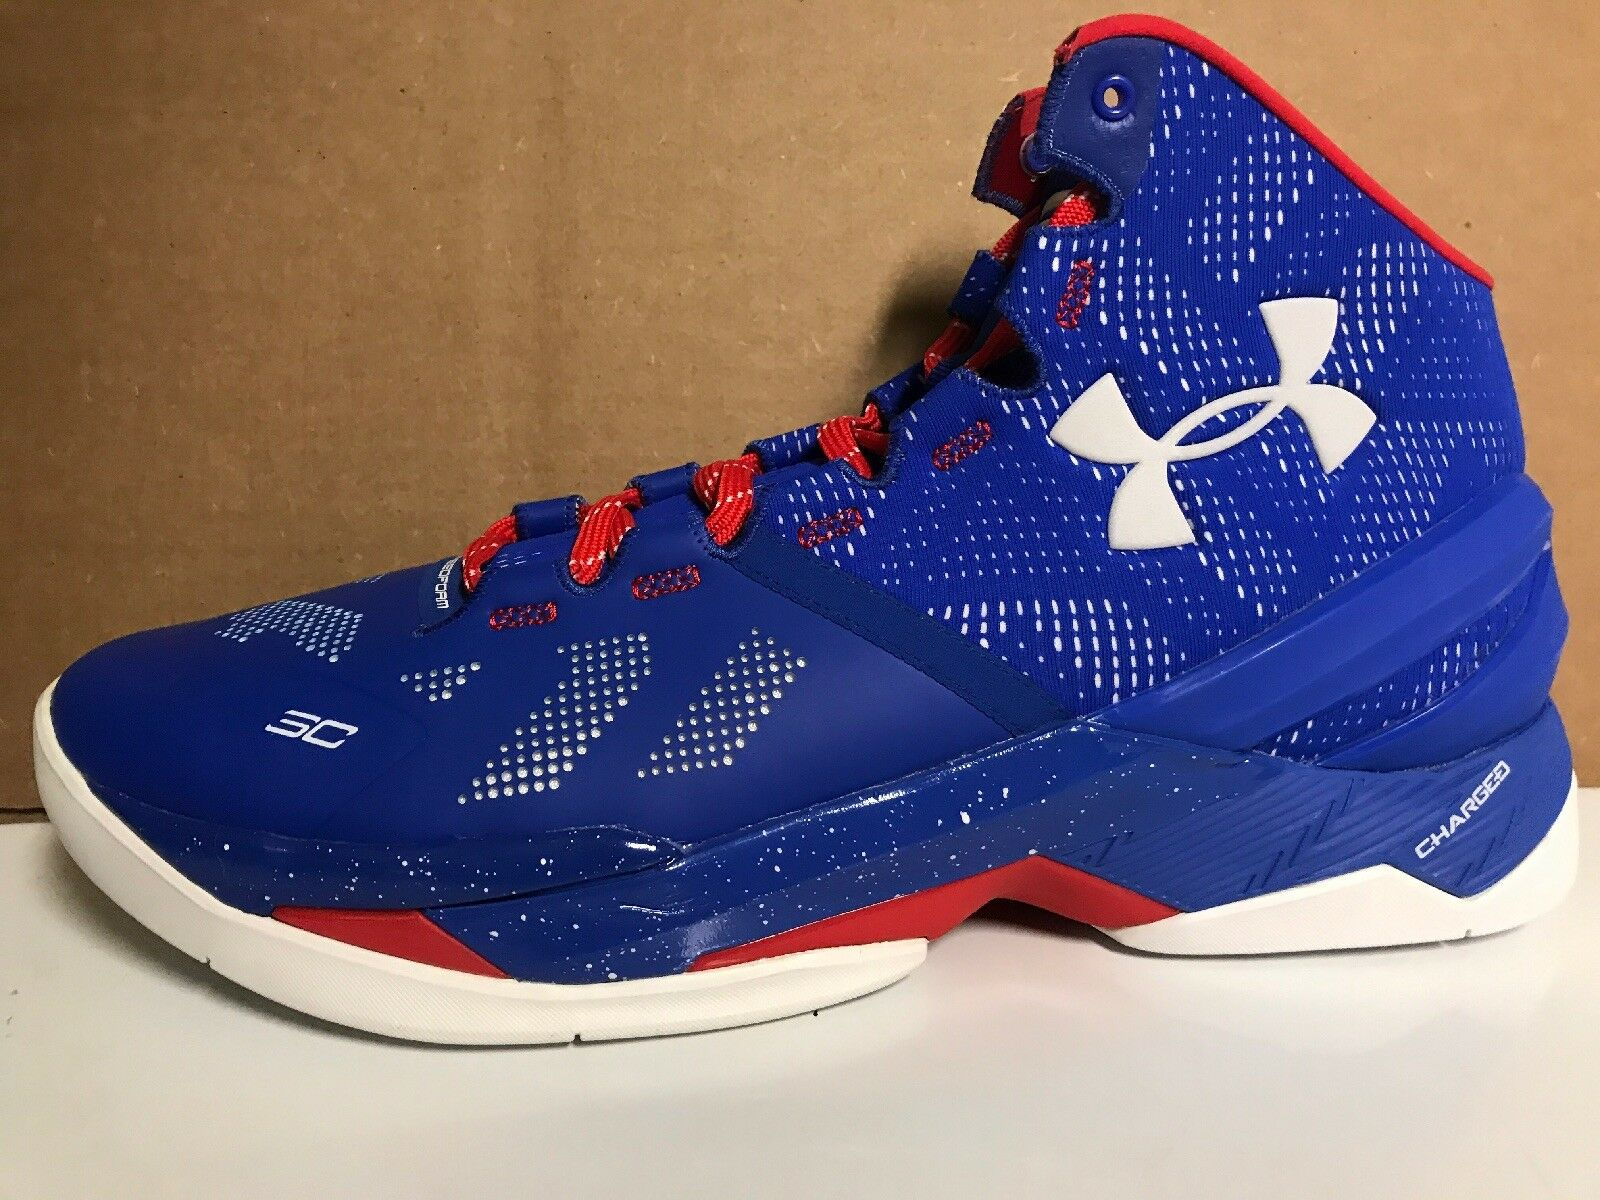 DS Under Armour Armour Armour Curry 2 SC30 Basketball scarpe blu 1259007-401 Dimensione 10.5 edcd2e